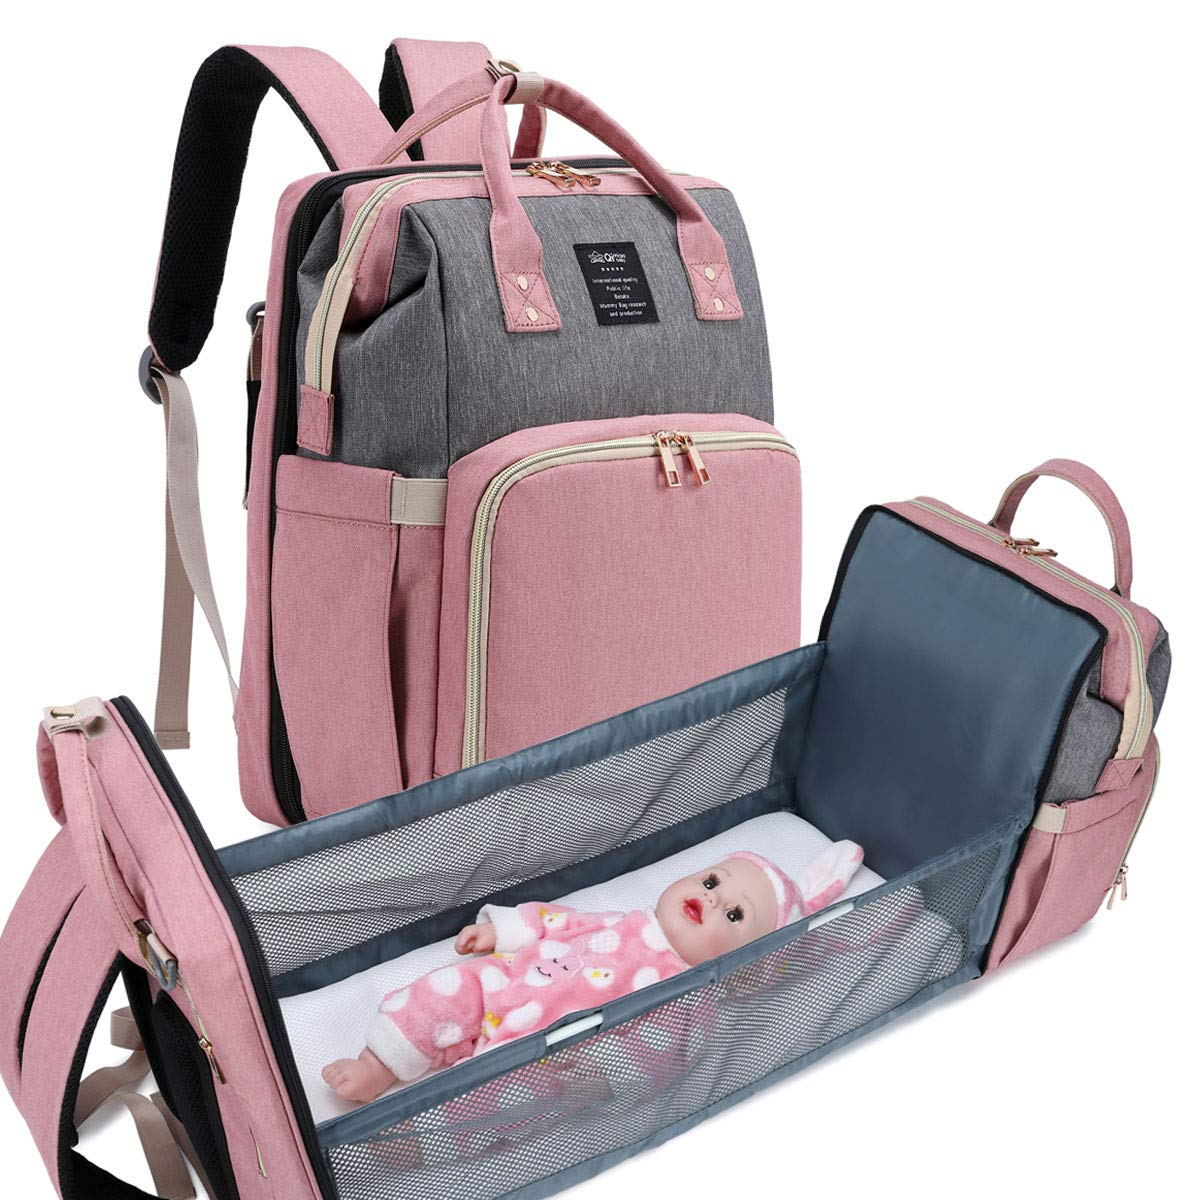 QIMIAOBABY Multifunction Travel Mummy Bag, Diaper Bag, Portable Travel Bed (Pink with Gray)